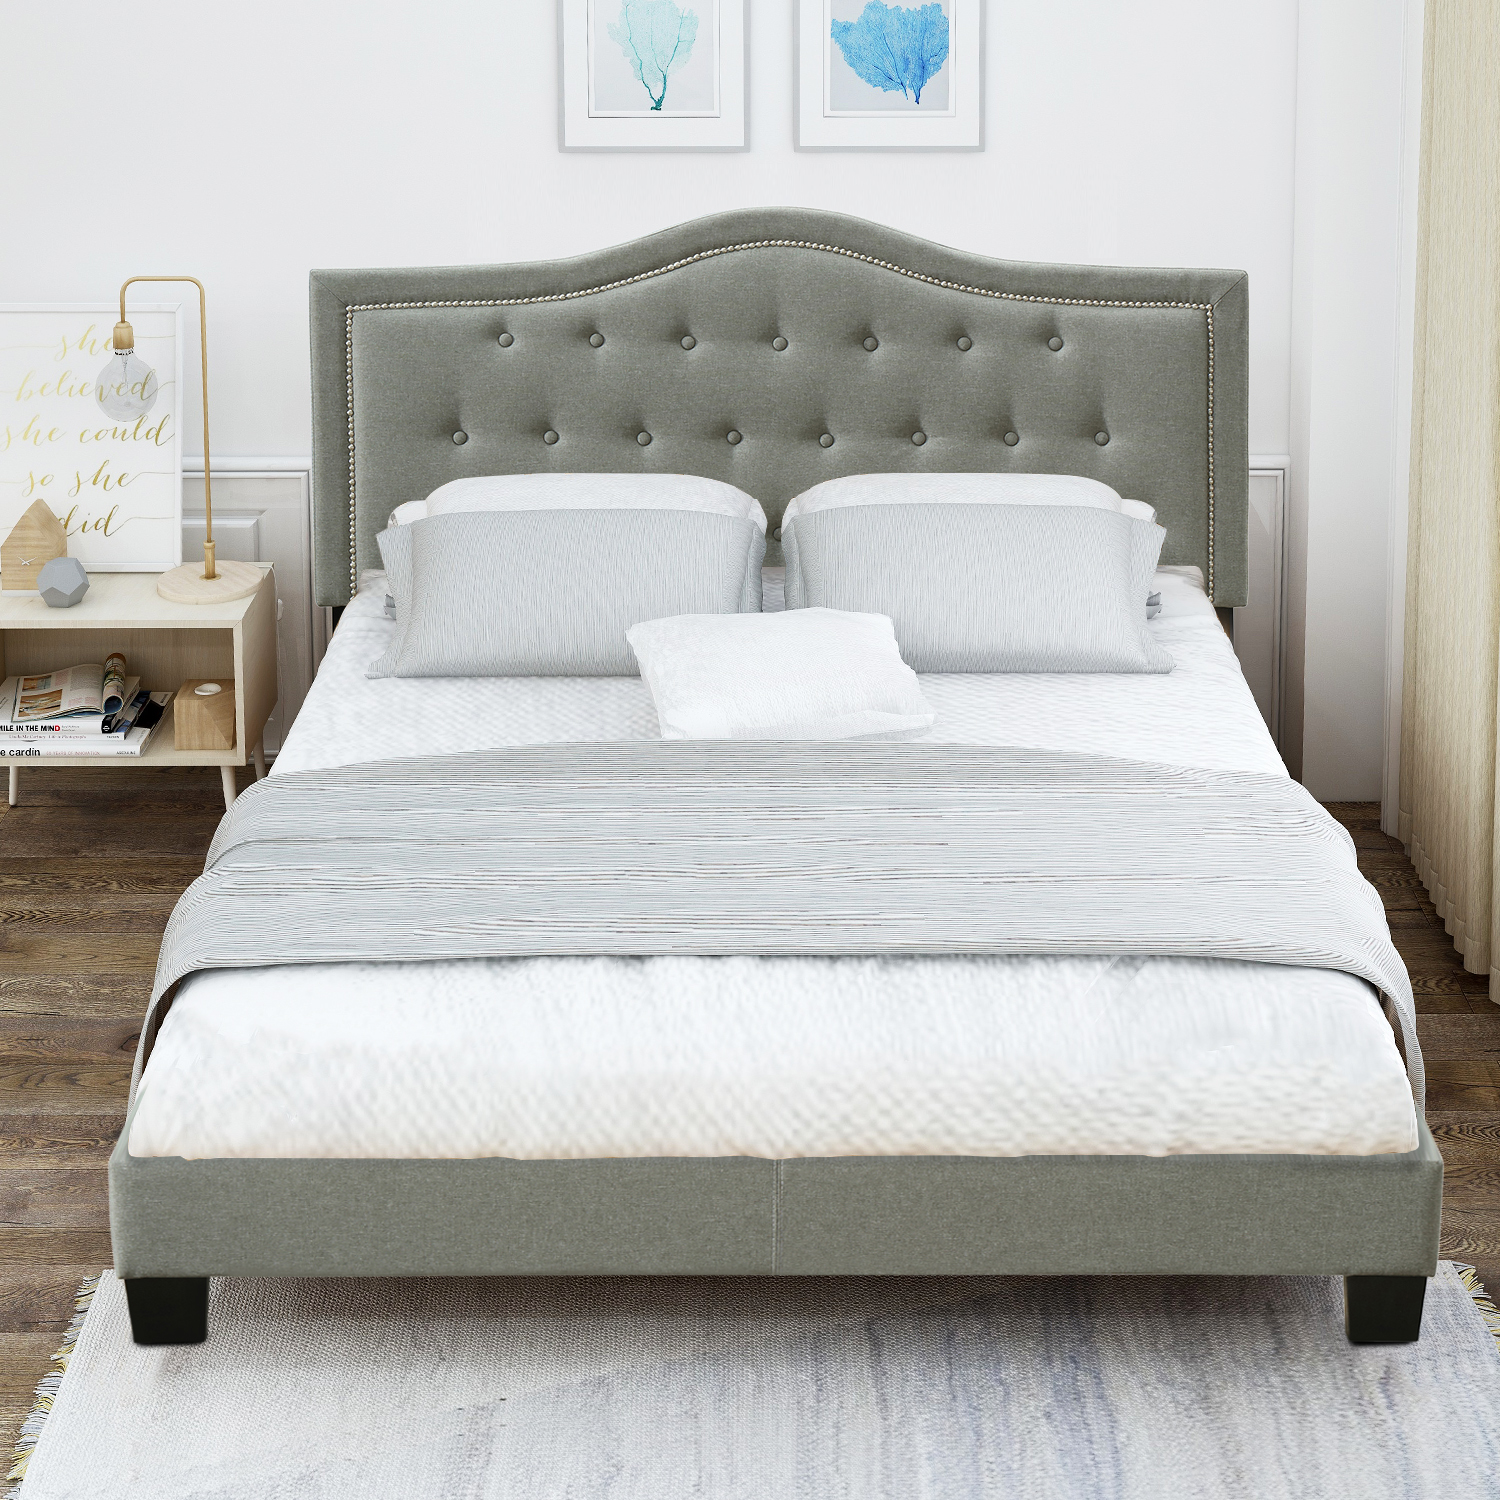 clearance queen platform bed frame with headboard modern on walmart bedroom furniture clearance id=93499